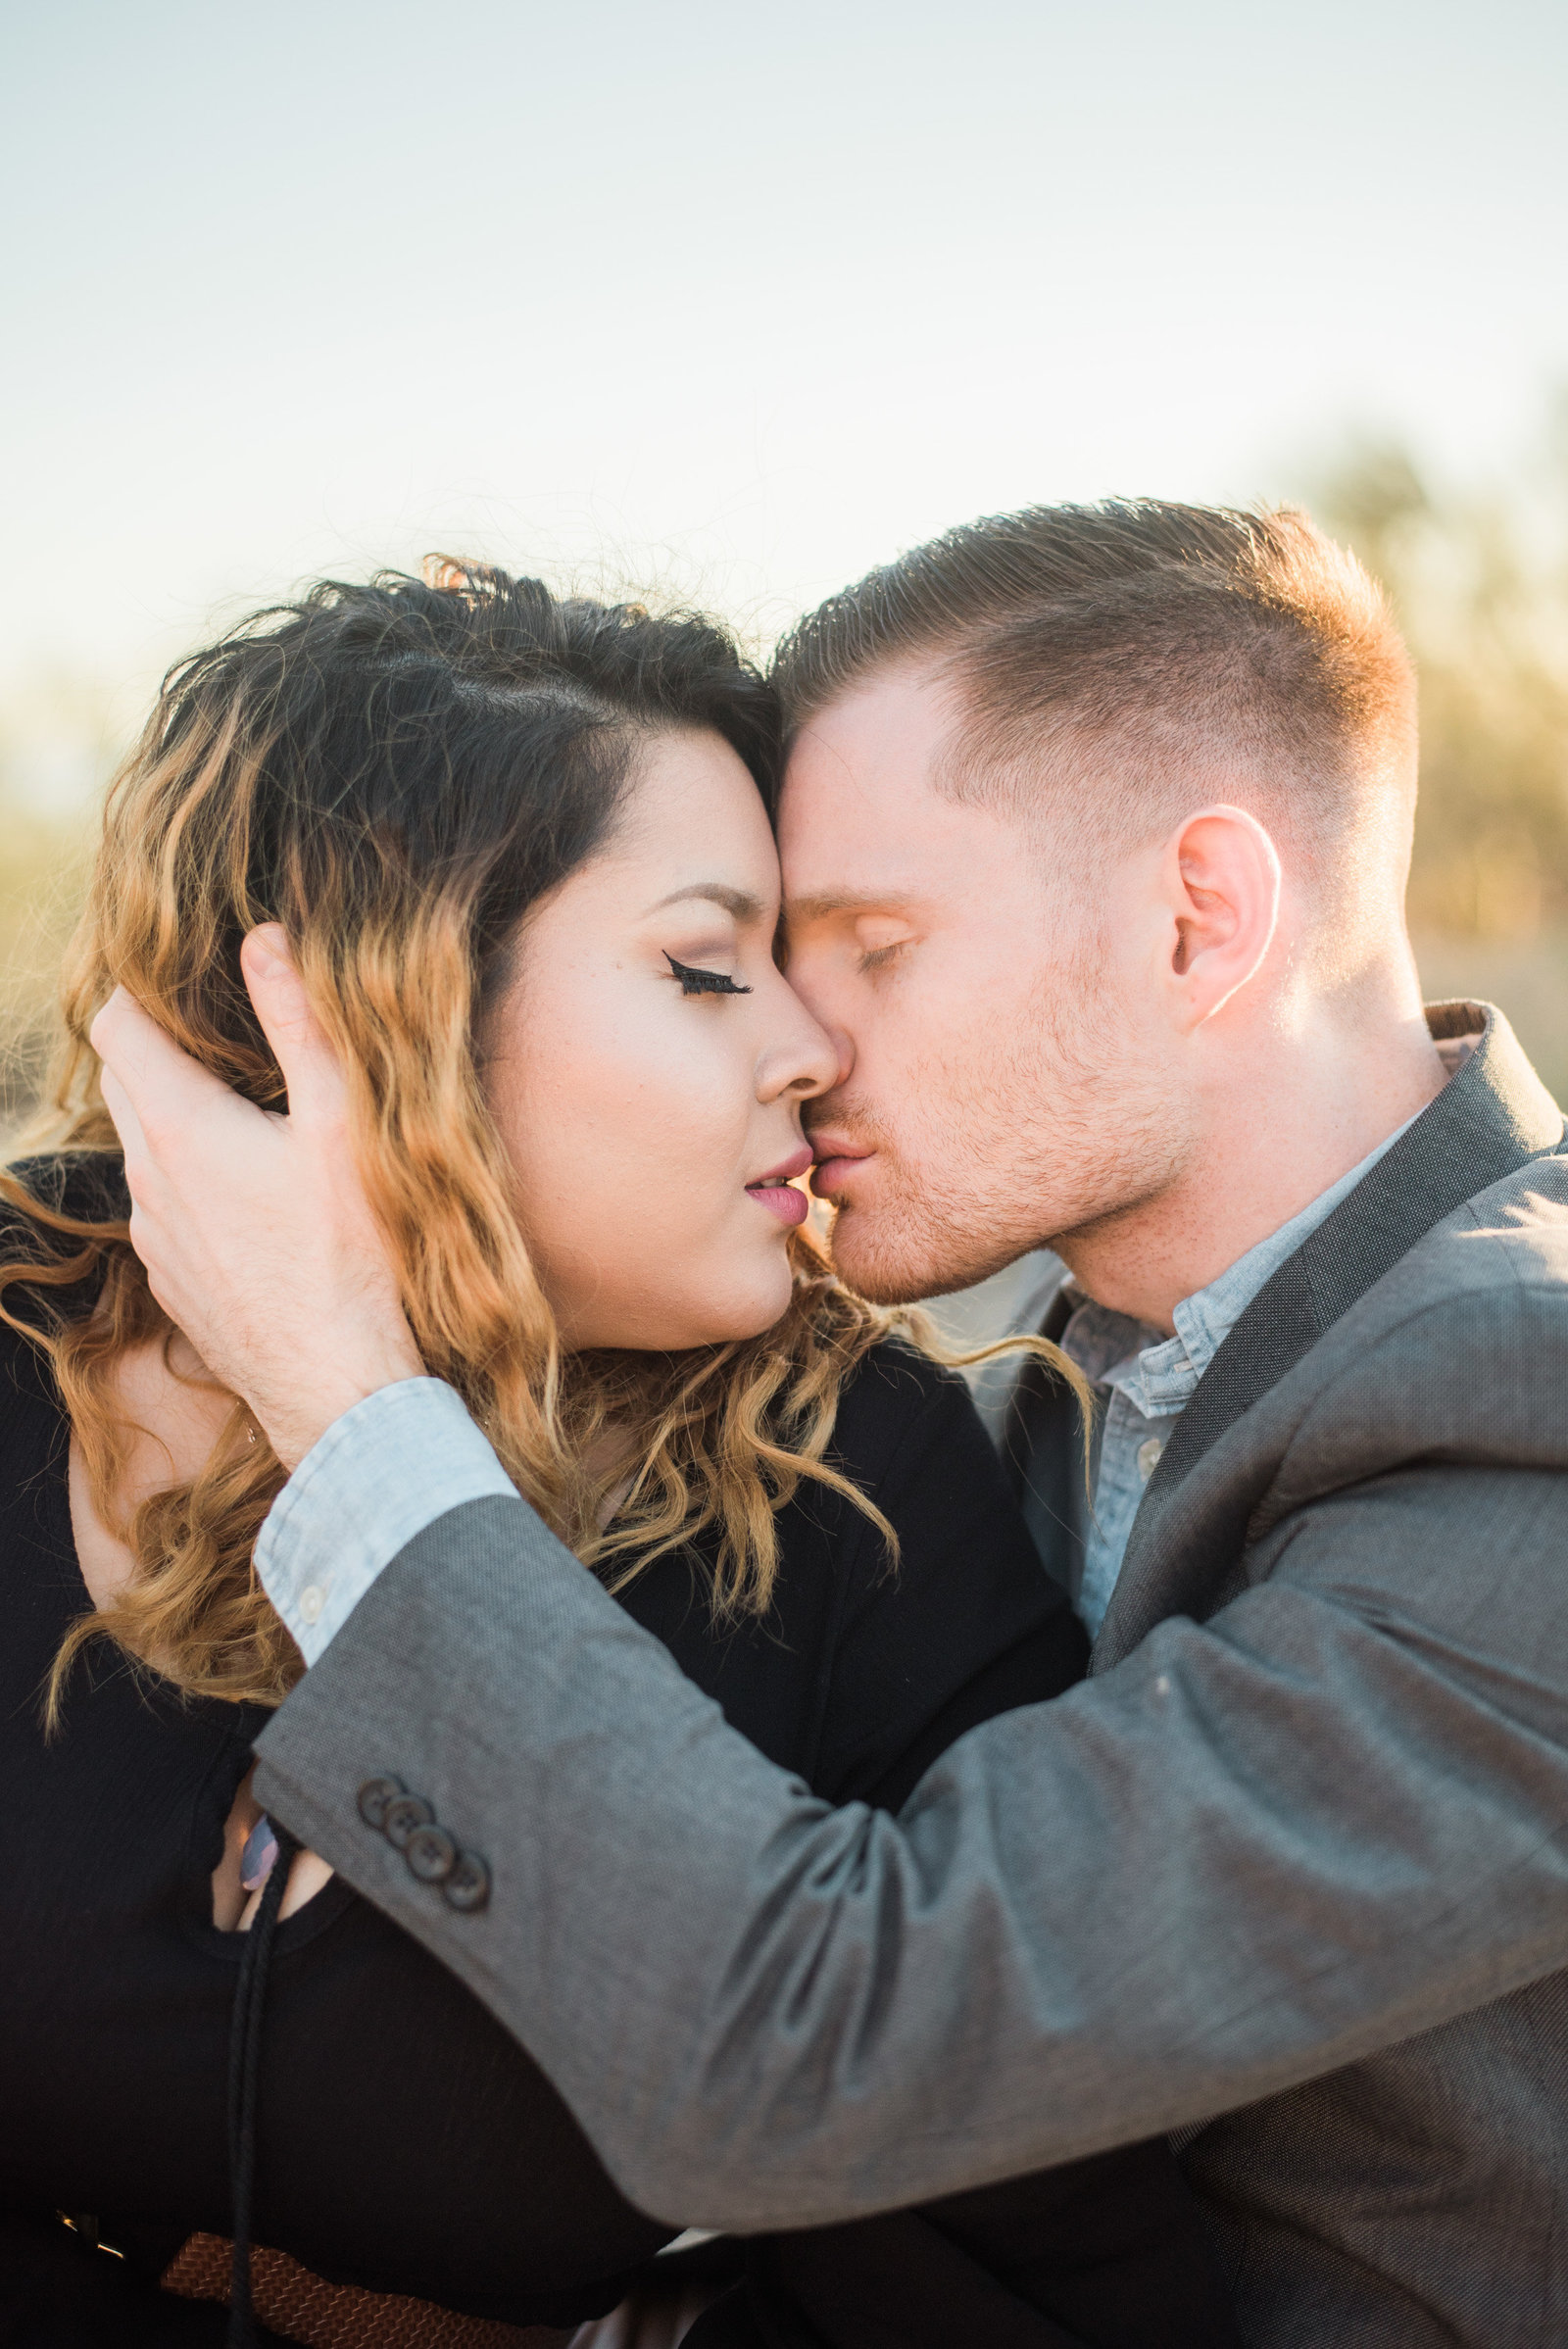 Gates Pass Tucson desert engagement session of bride and groom kissing